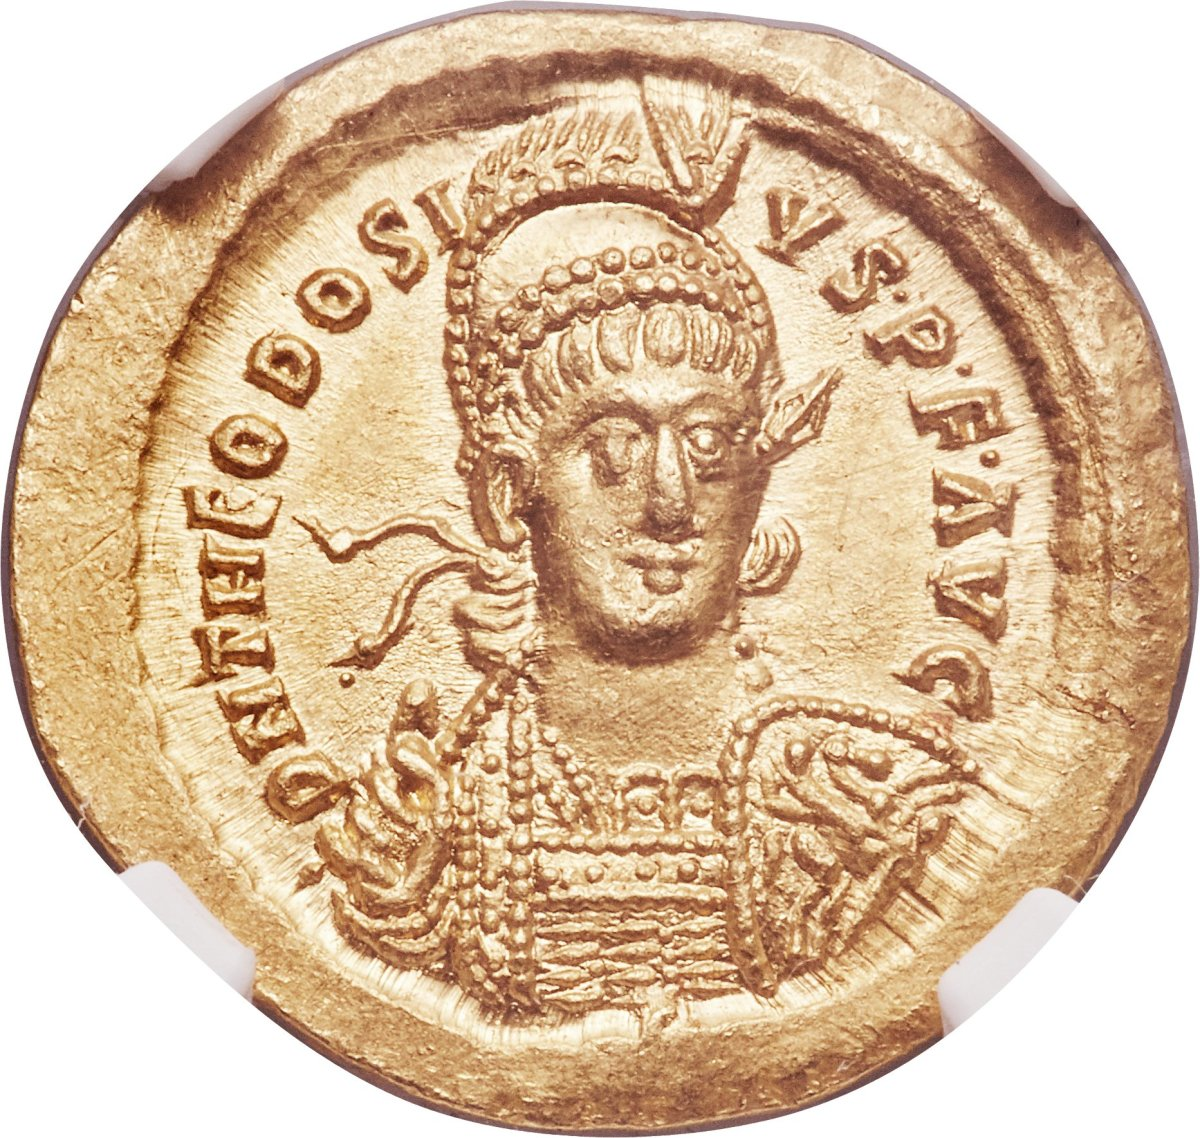 Shown is an example of a Theodosius II solidus. Image courtesy of Heritage Auctions